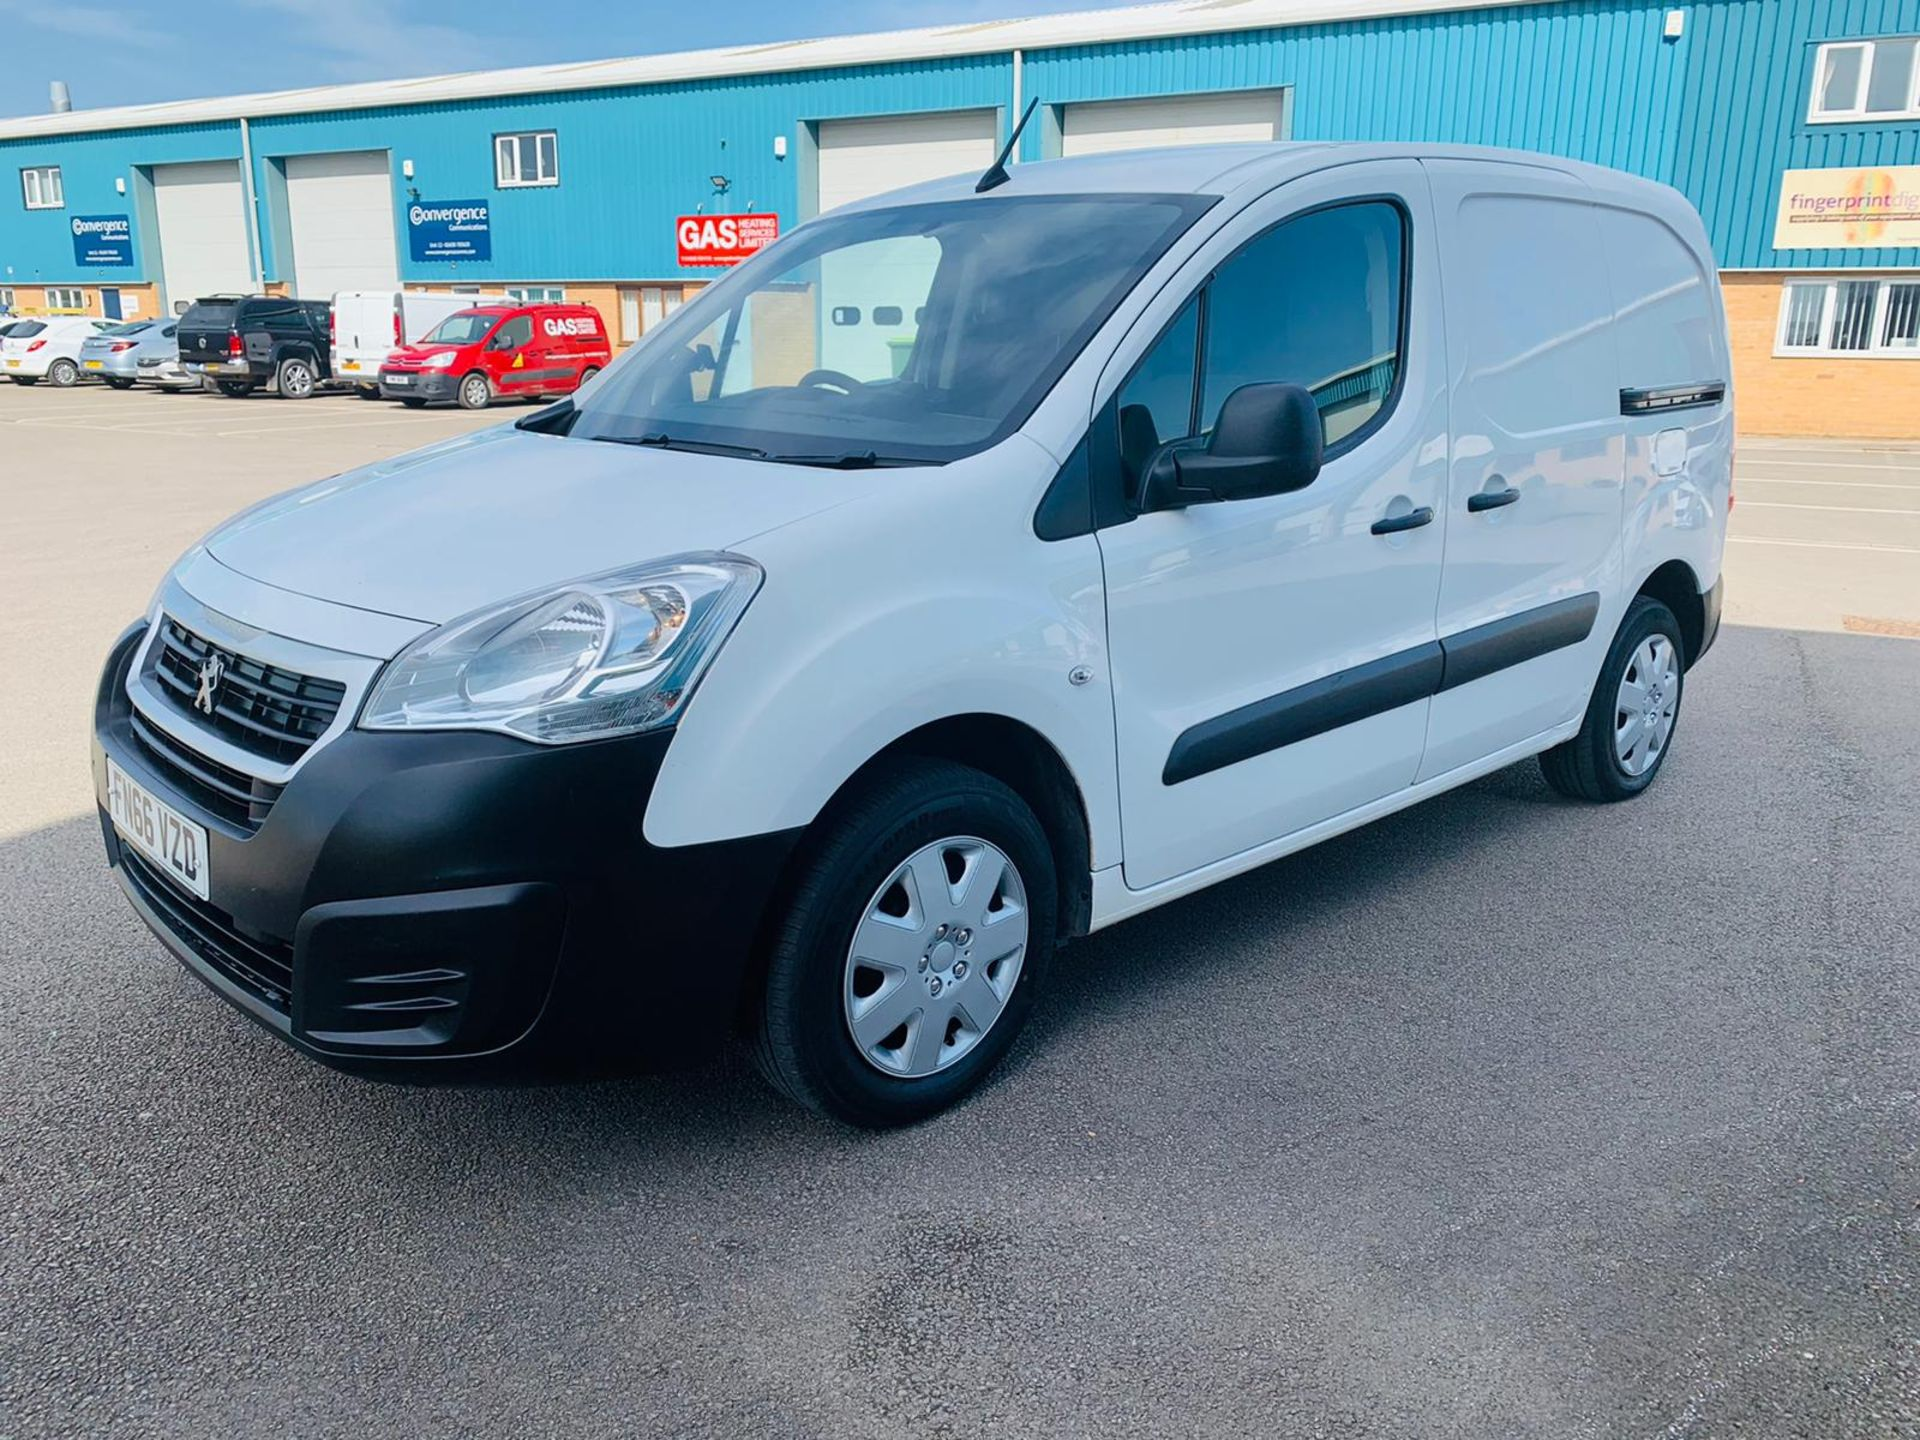 Peugeot Partner 1.6 HDI Professional 2017 Model - 1 Owner - Service Printout - Air Con